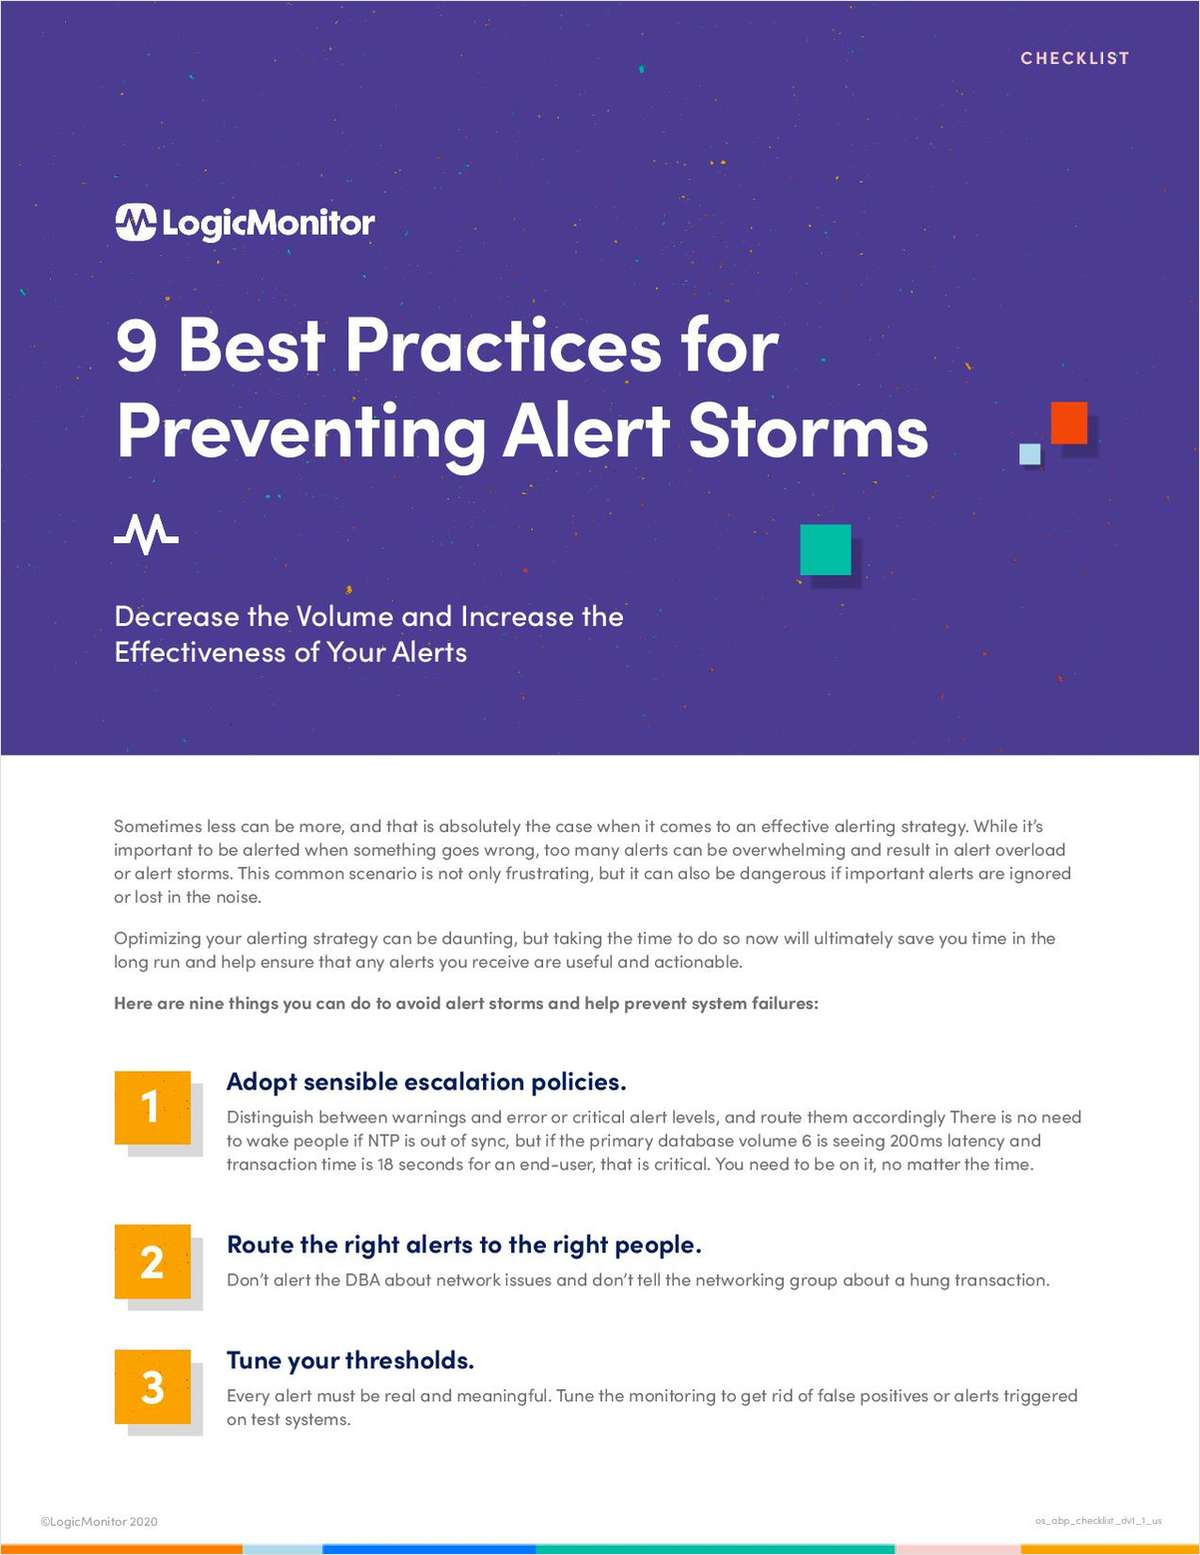 Best Practices for Preventing Alert Storms